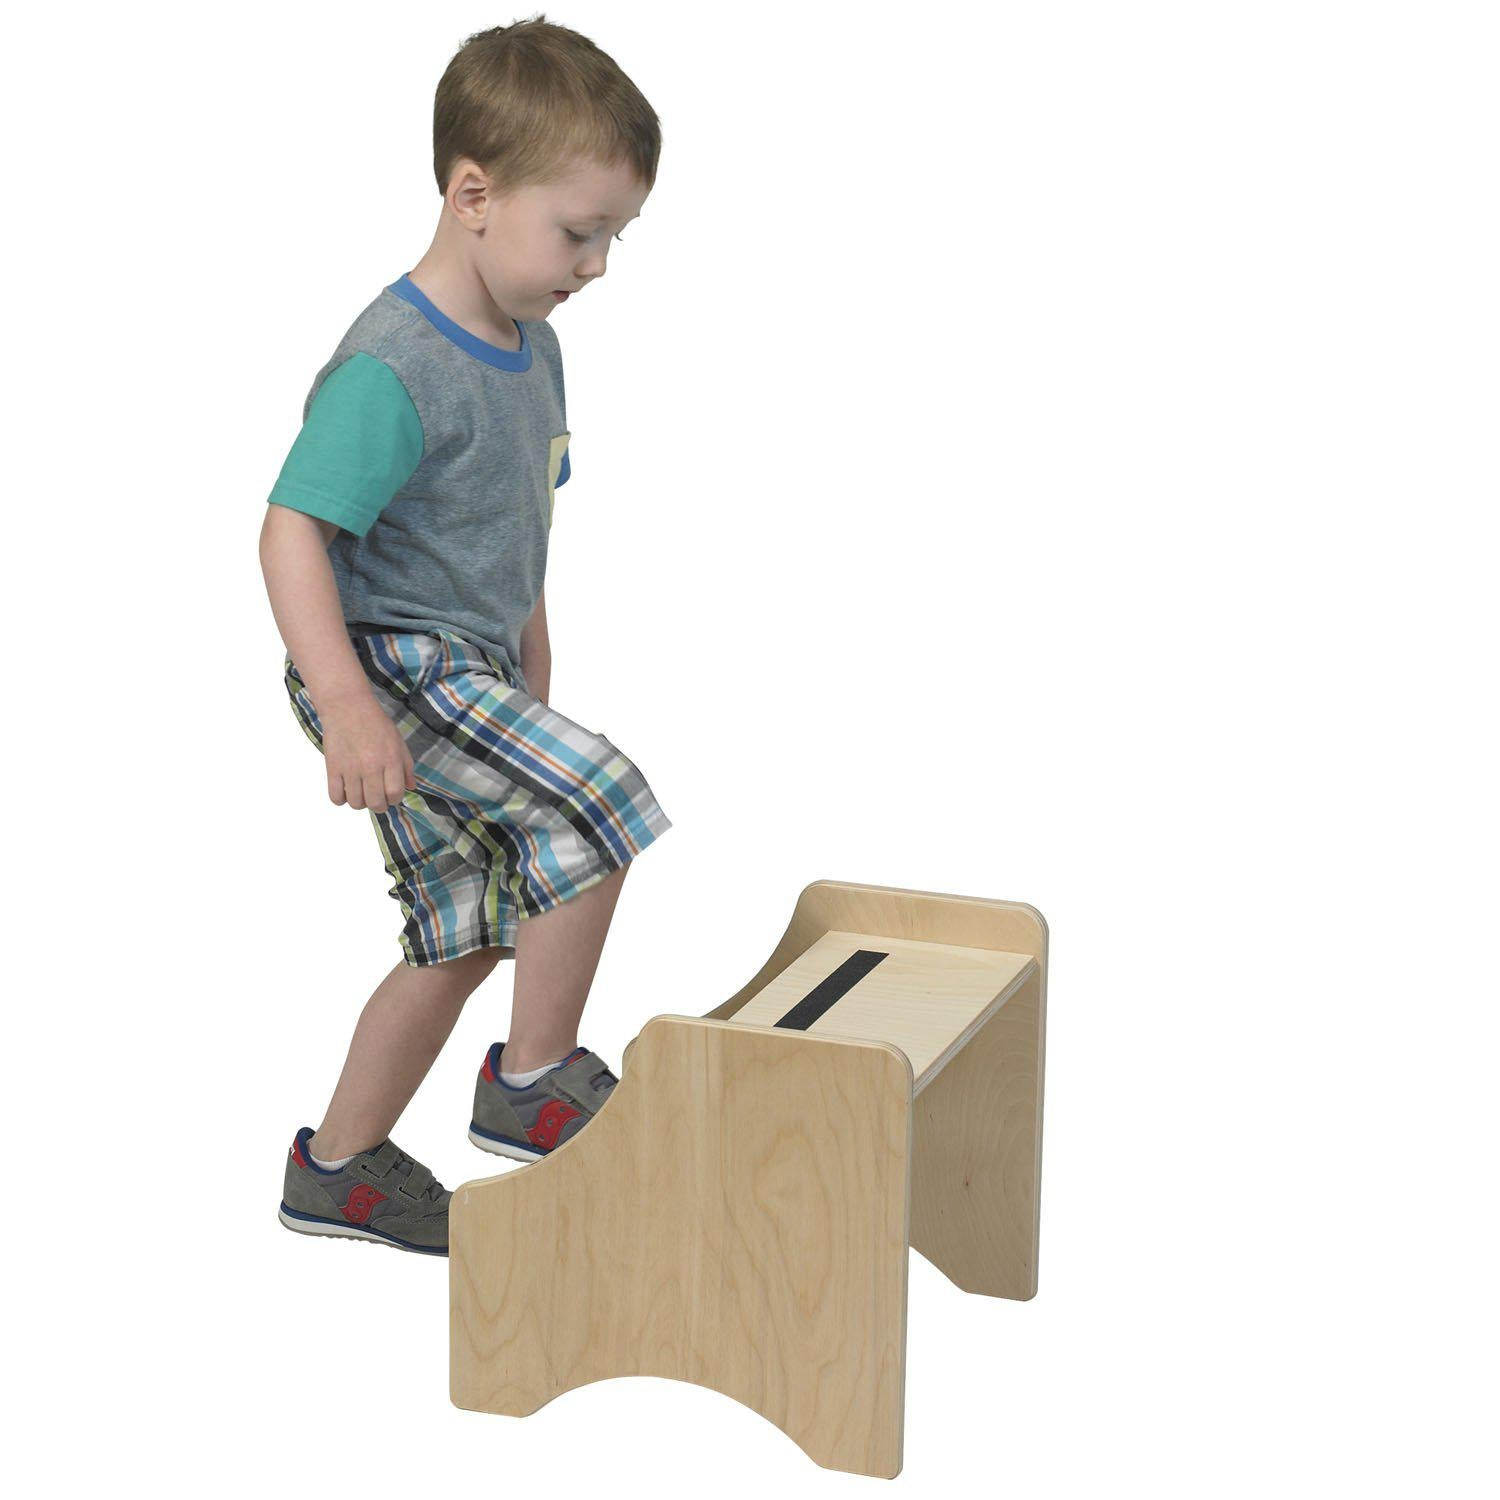 Portable Step Stool